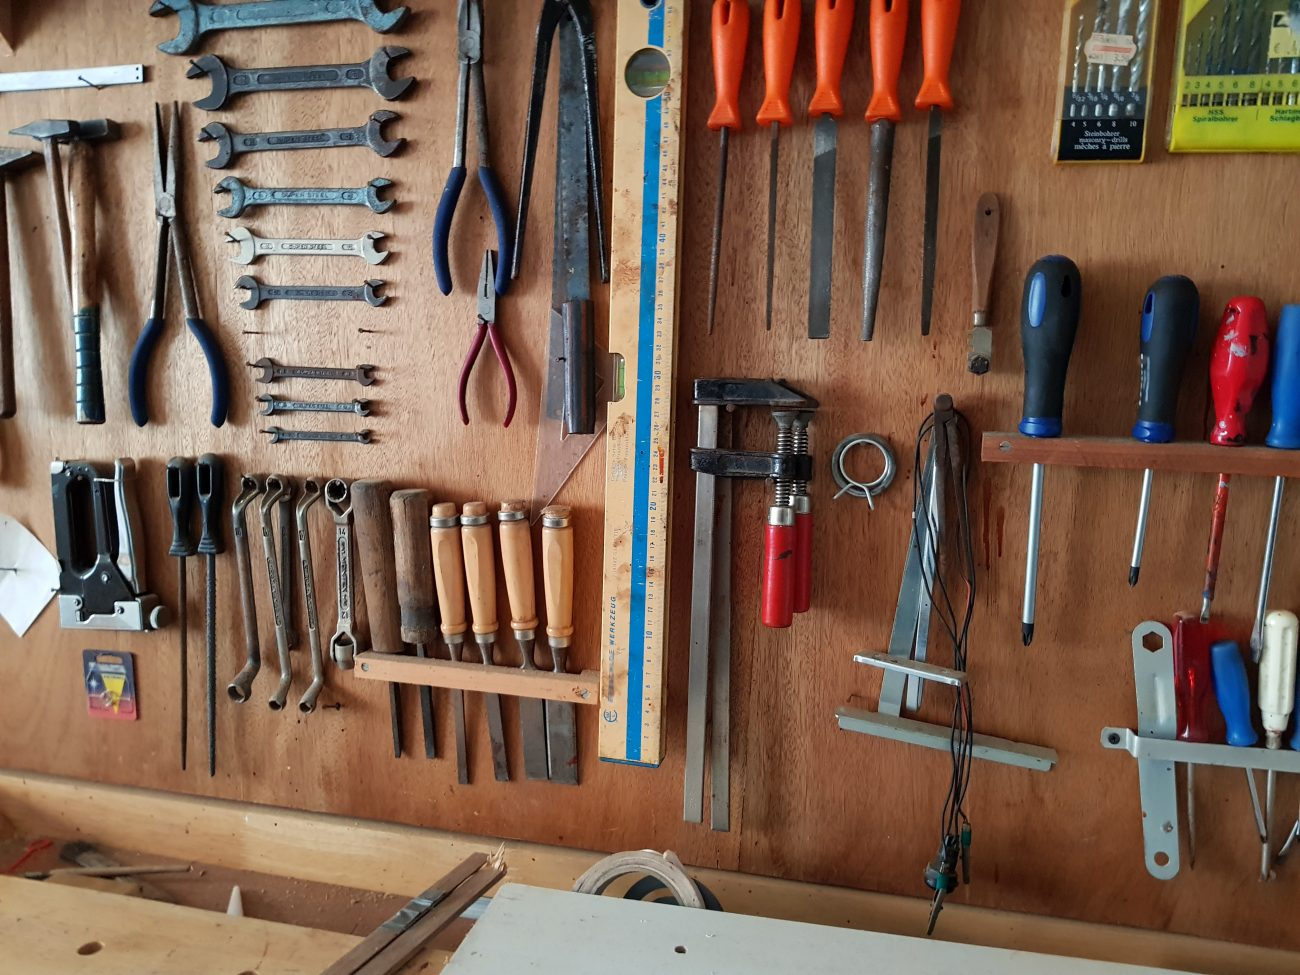 Heatons Men In Sheds - Stockport - Tool boards